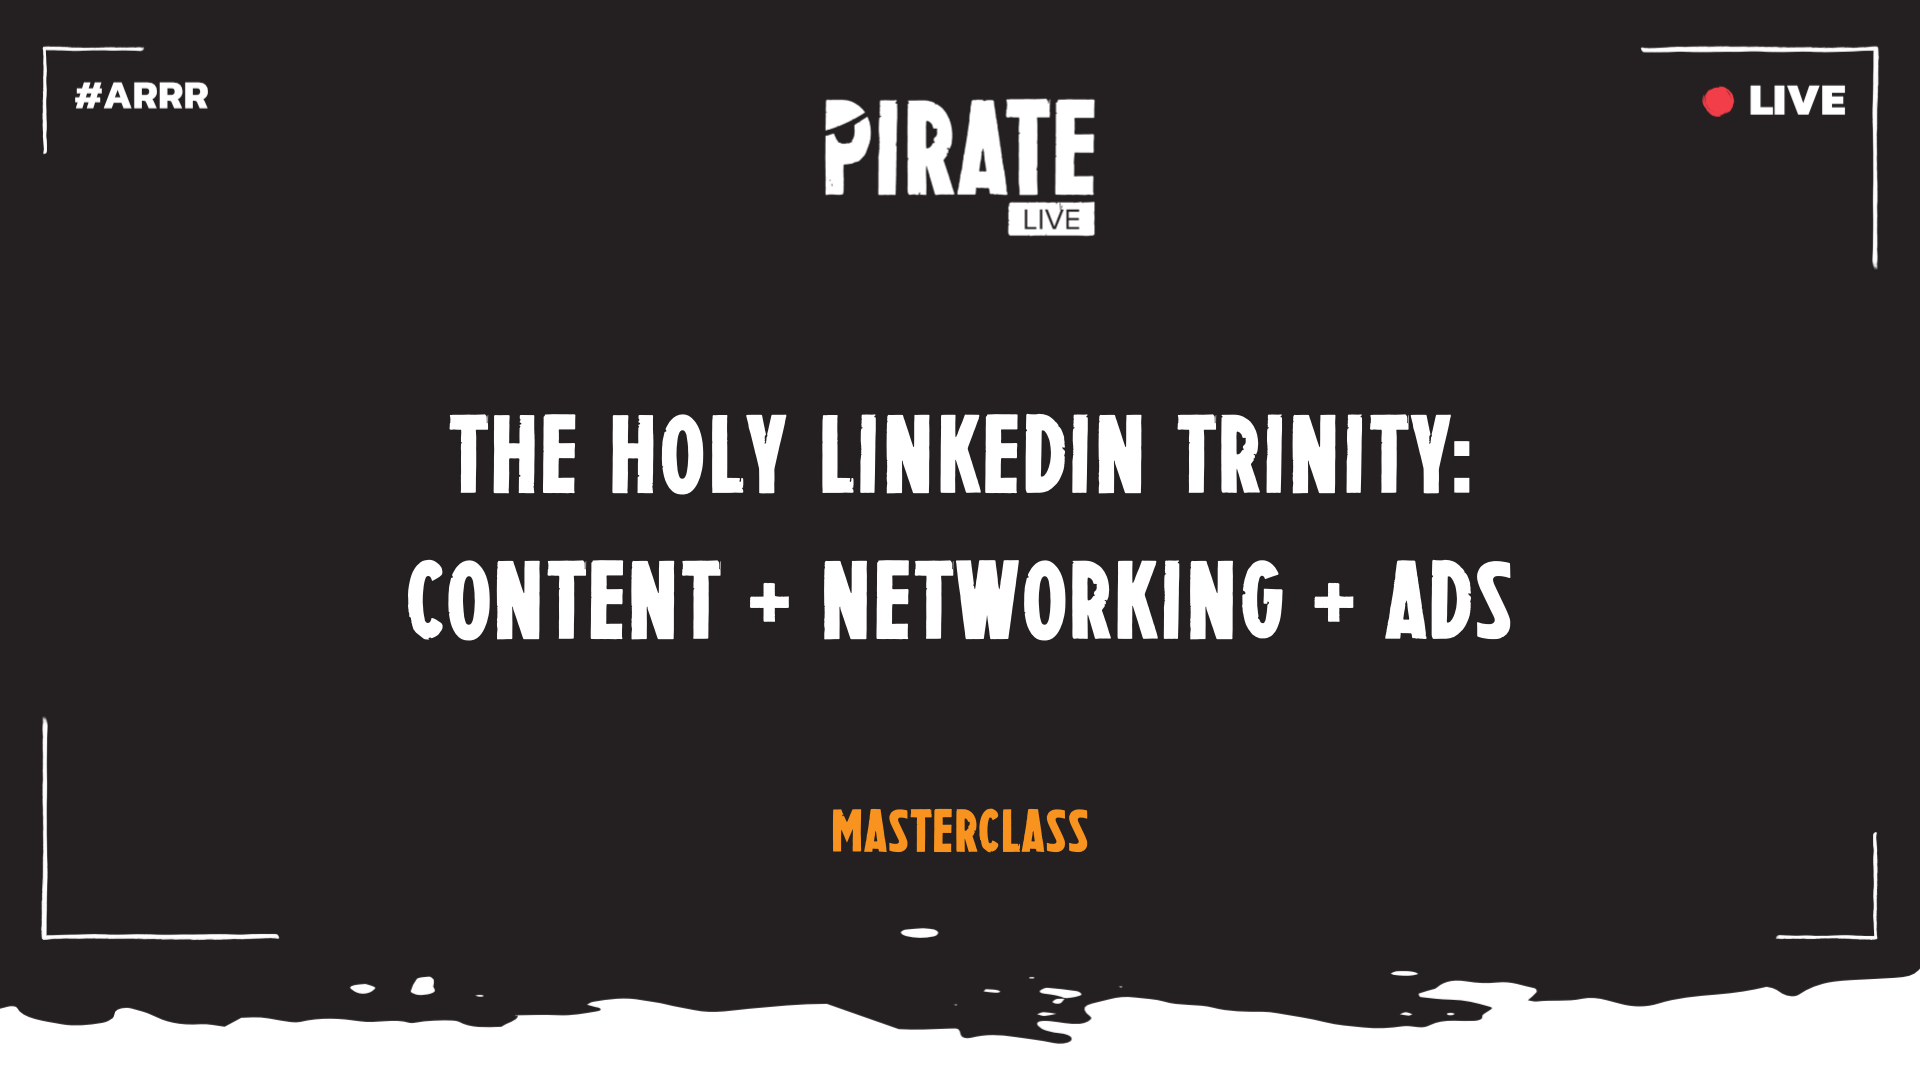 The holy Linkedin trinity: Content + Networking + Ads